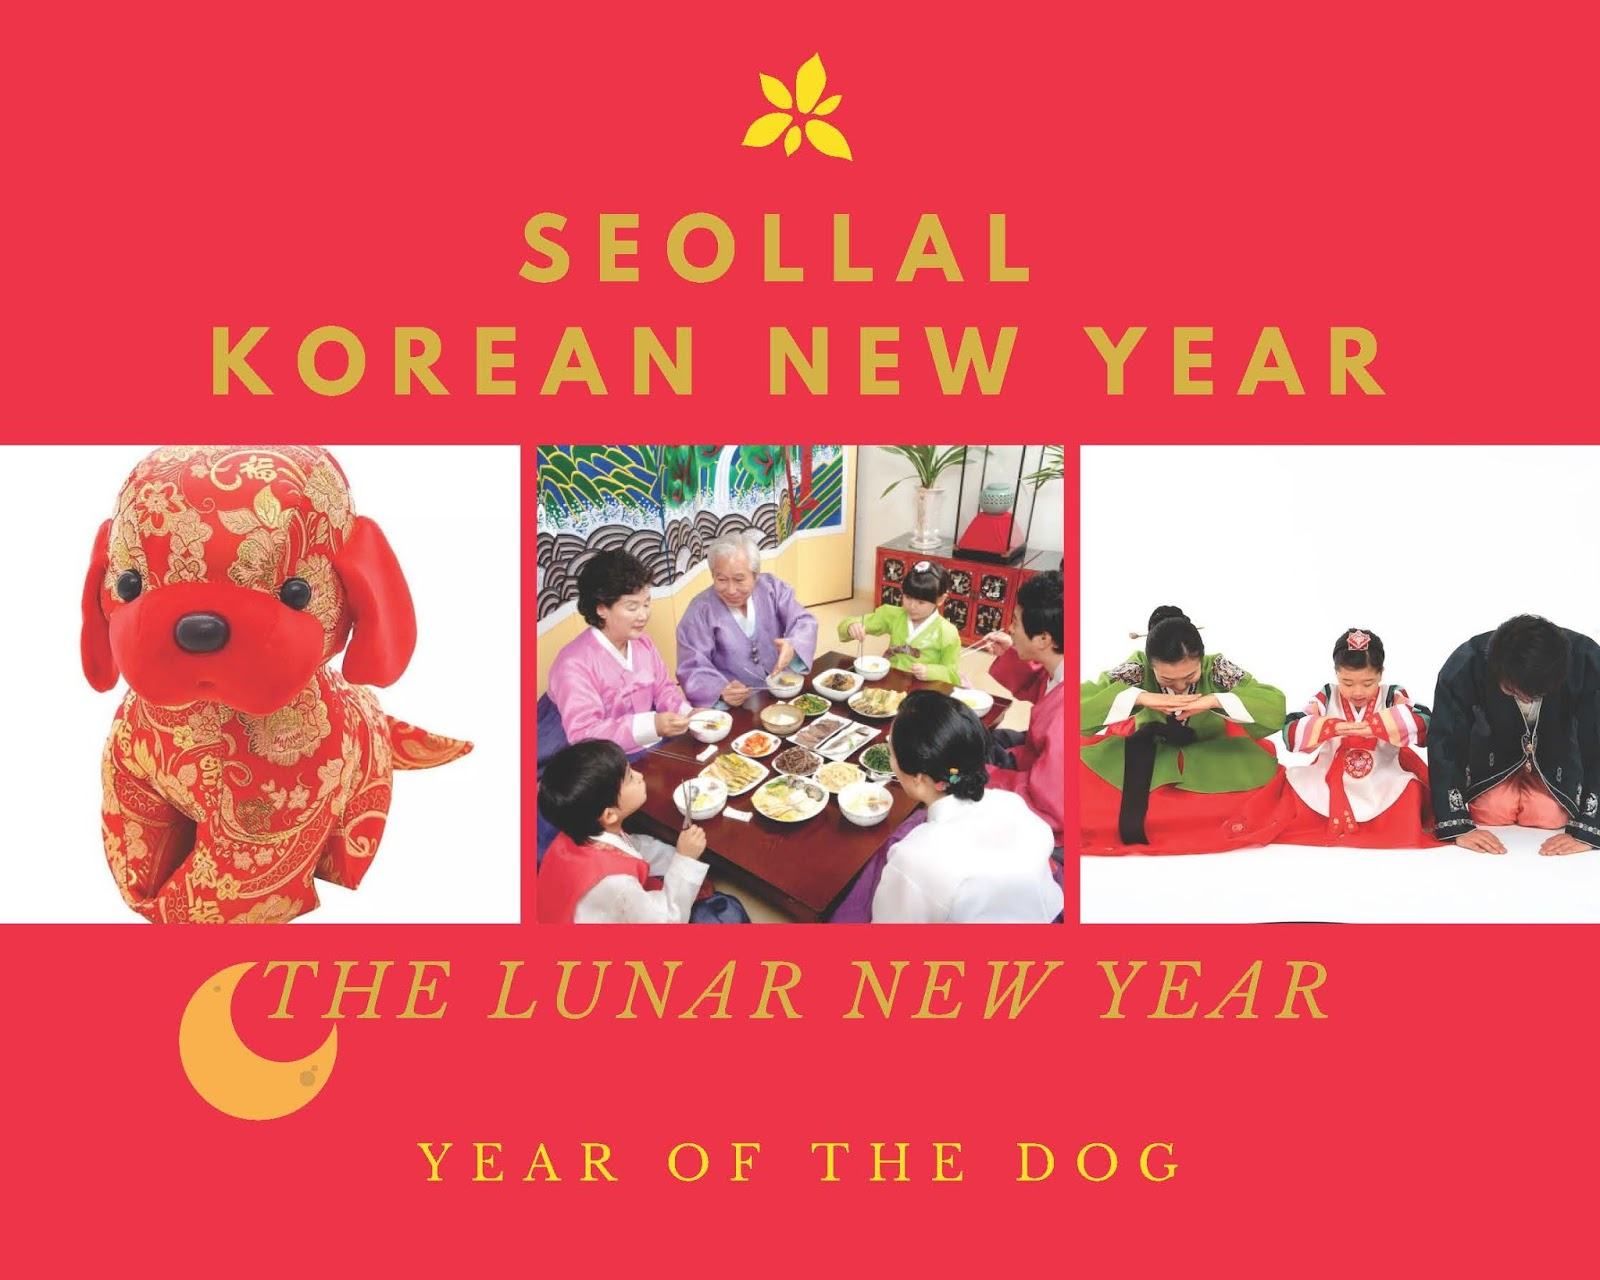 Seollal Korean New Year What Does Seollal Means To Koreans